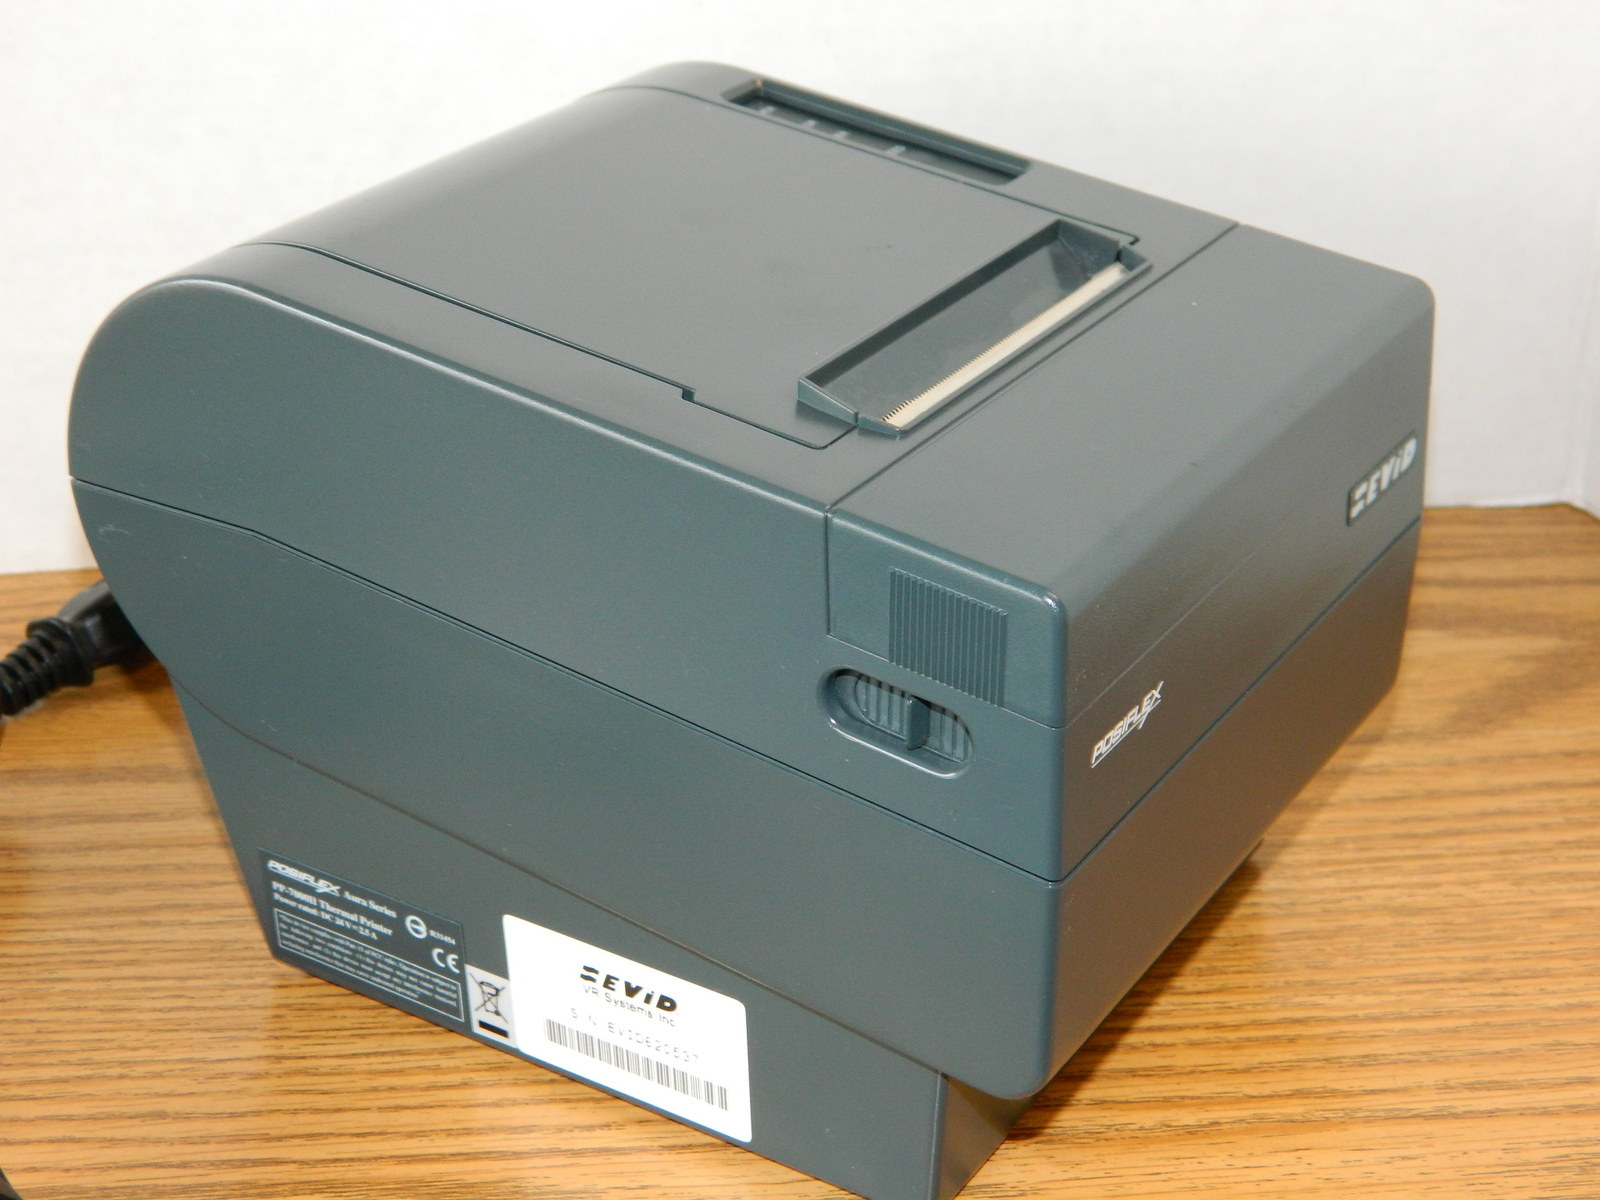 PosiFlex PP7000 Thermal RECEIPT PRINTER and 50 similar items